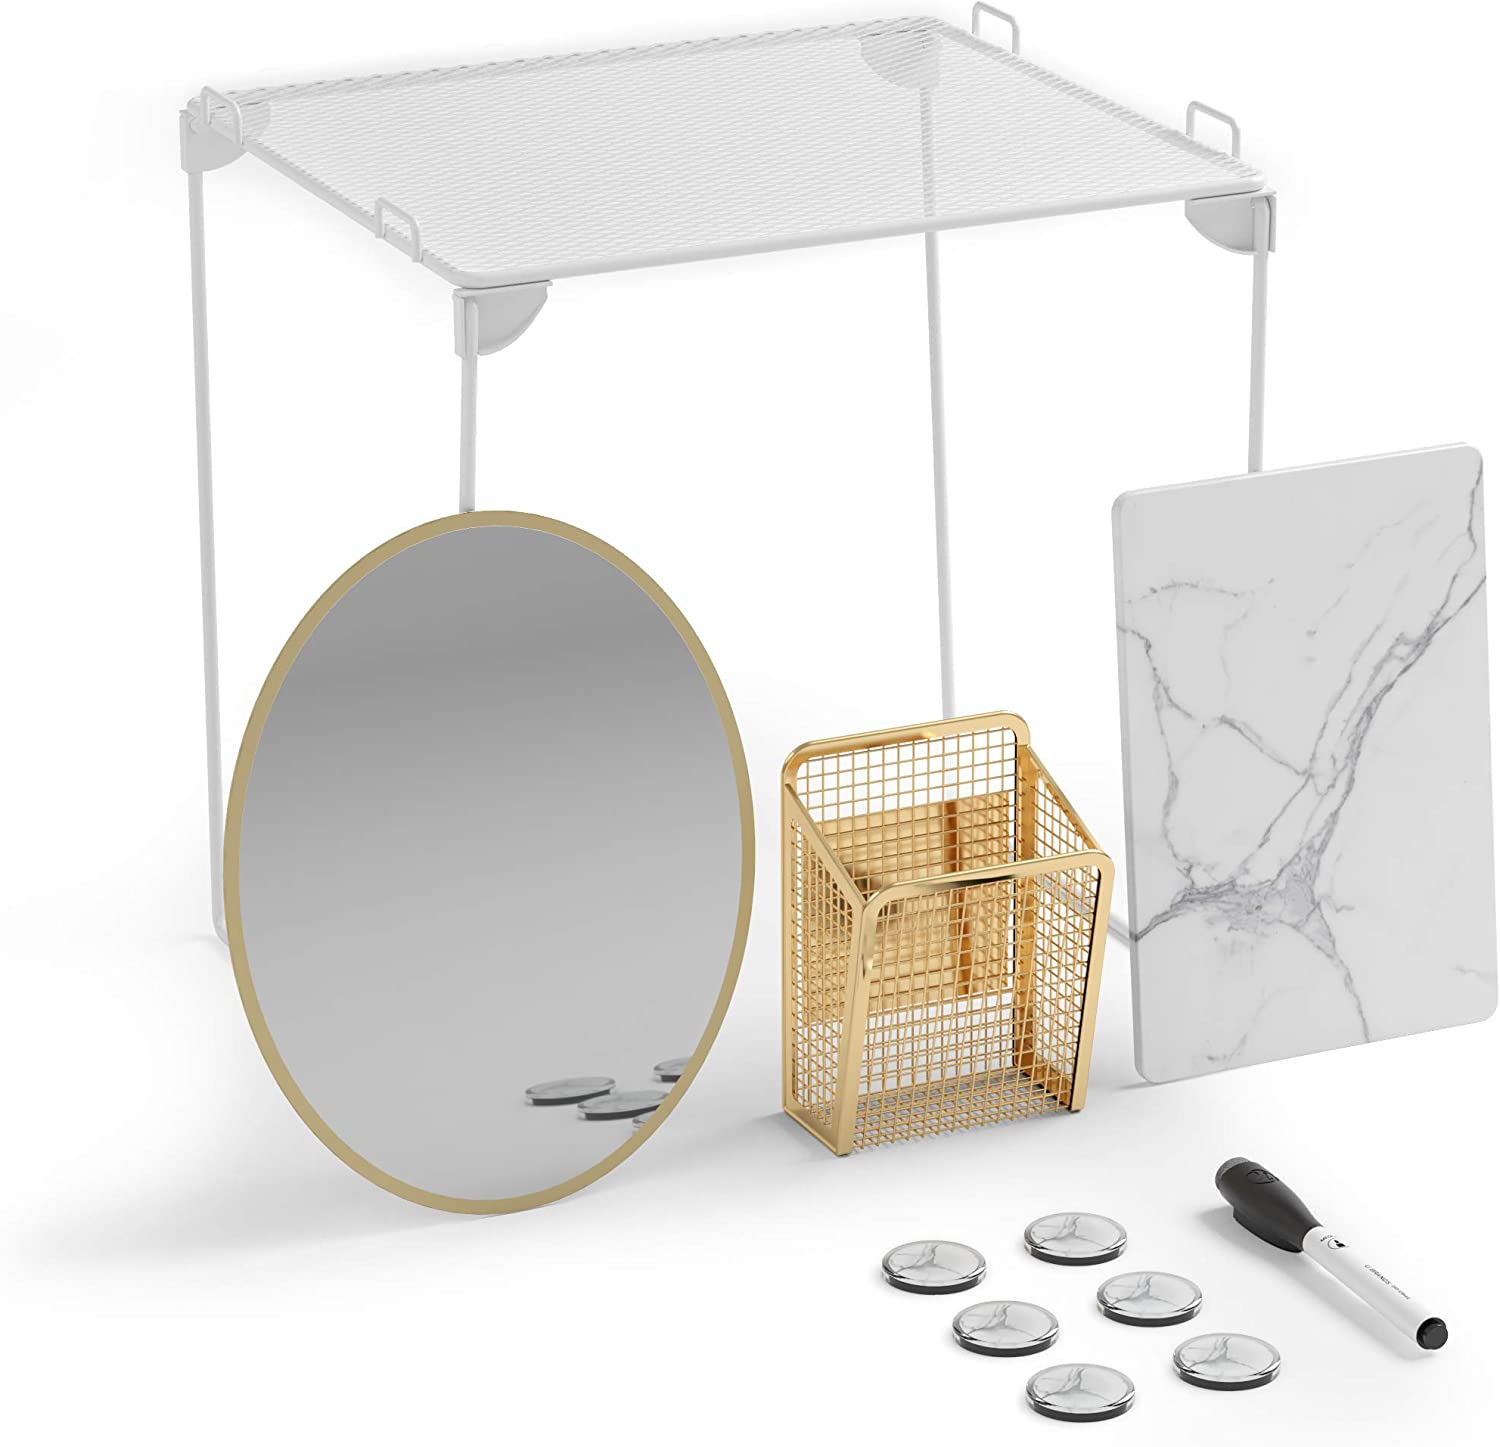 U Brands Locker Organizer and Decorating Kit, Back to School Essentials, Gold, 11-Piece, Includes Marble-Print Accessories, Mirror, Shelf, and More